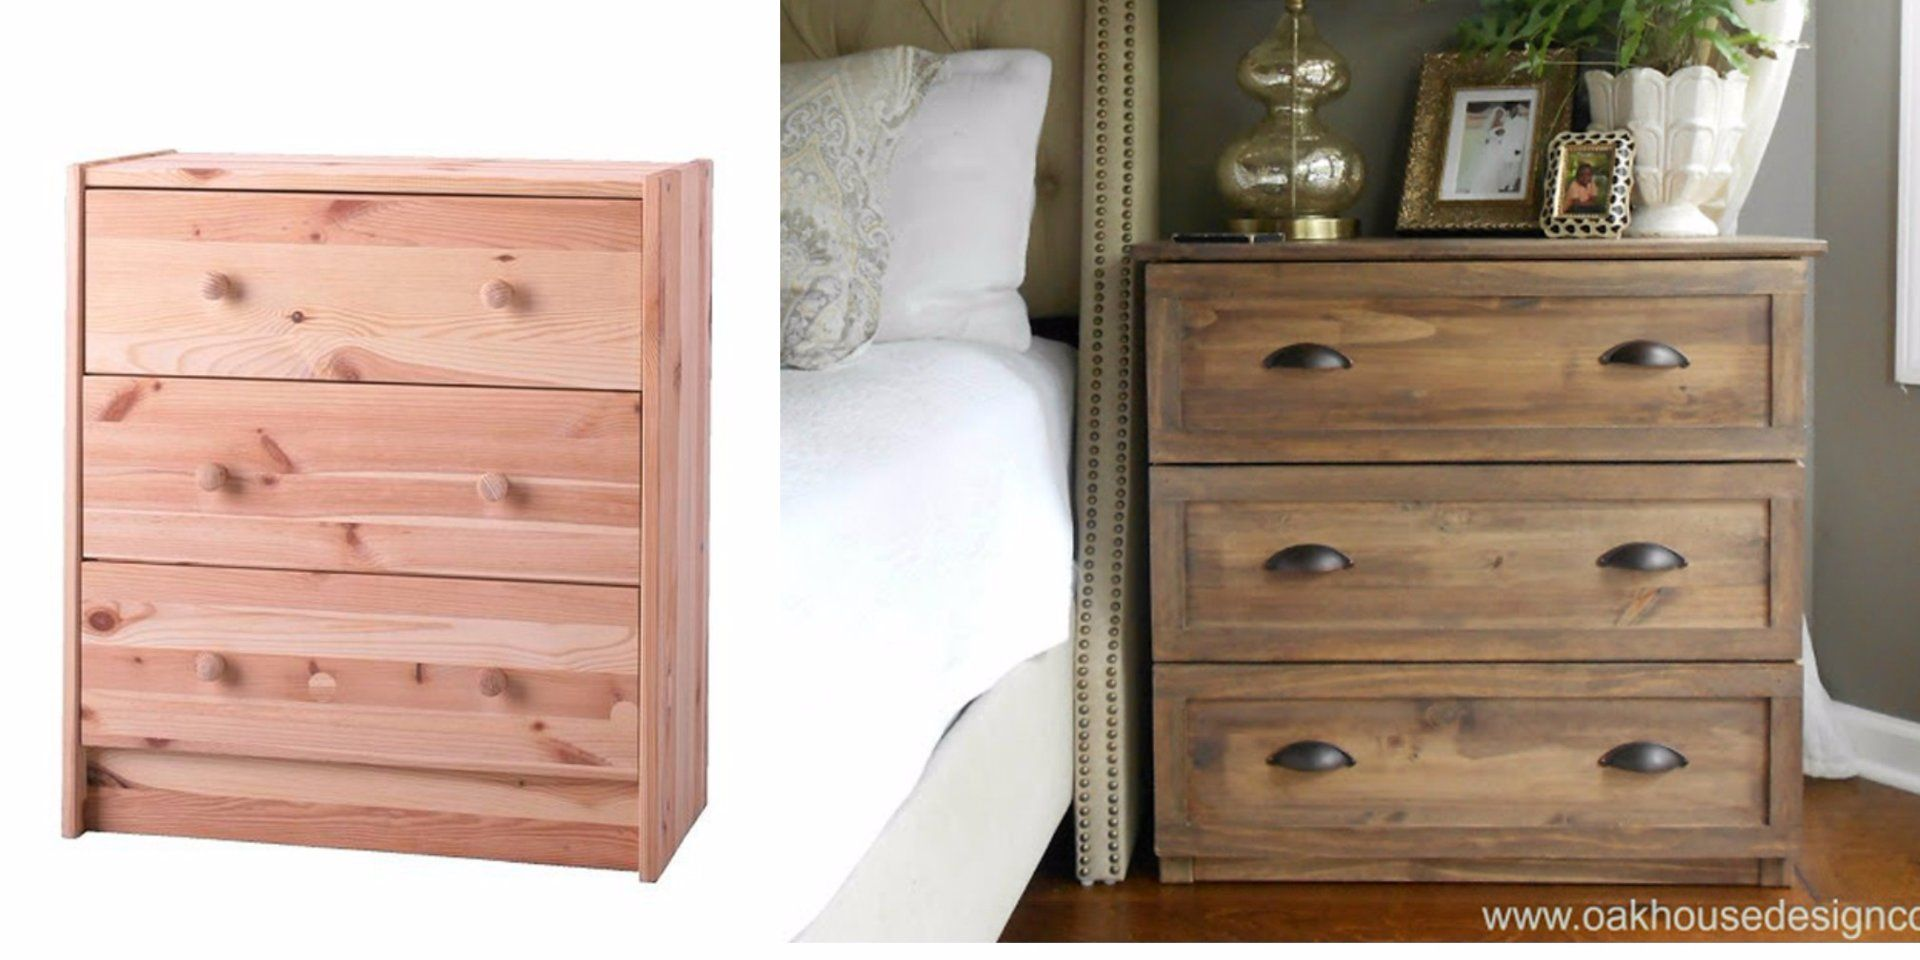 How to turn a ikea dresser into a highend vintage nightstand